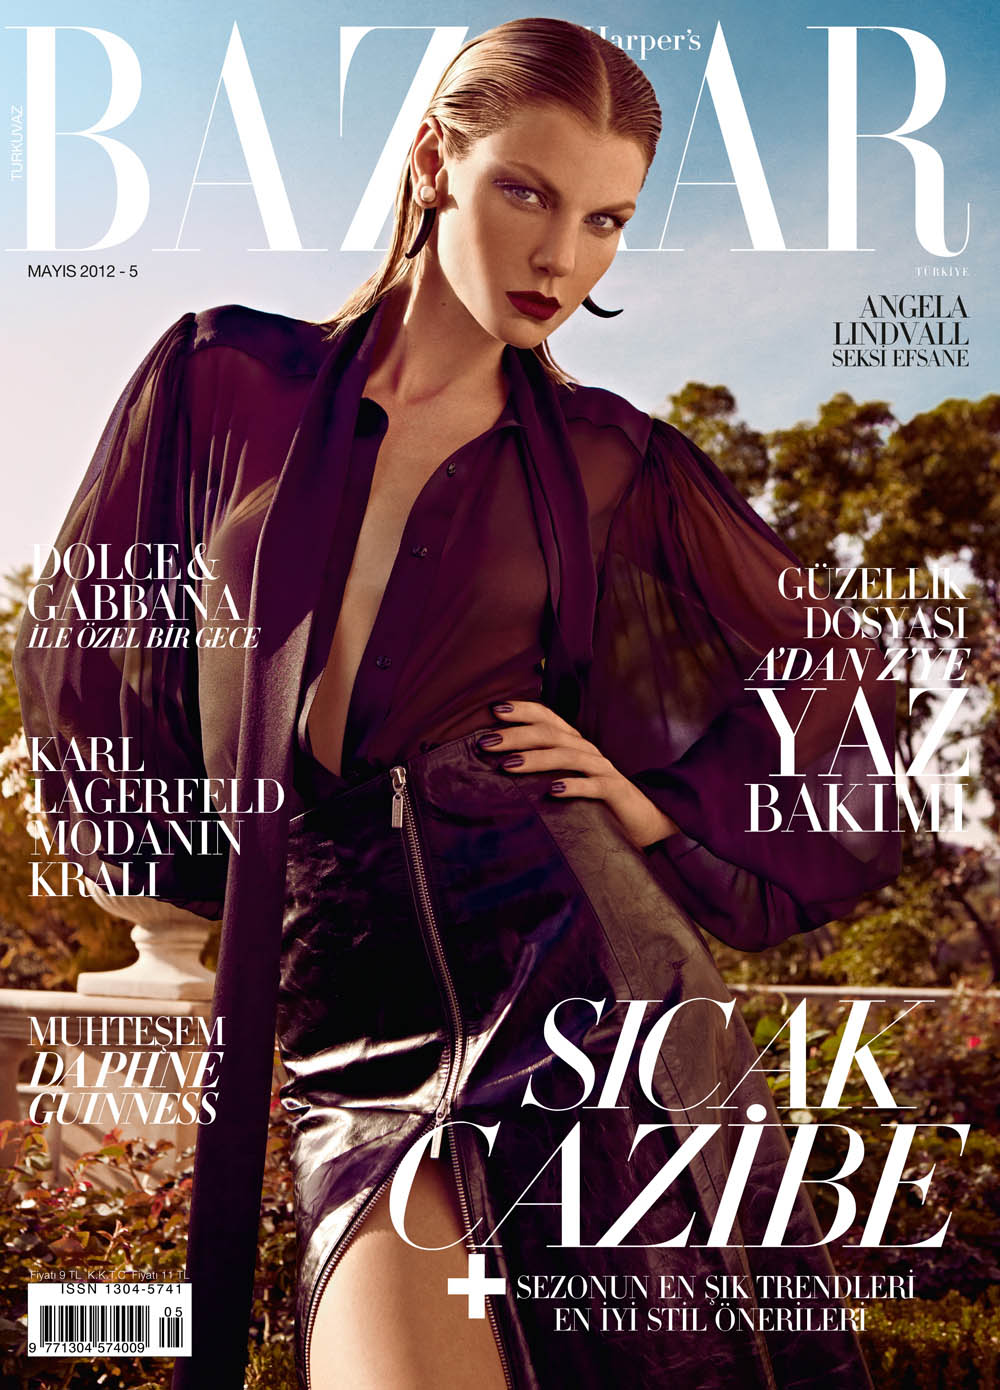 ANGELA LINDVALL FOR HARPER'S BAZAAR